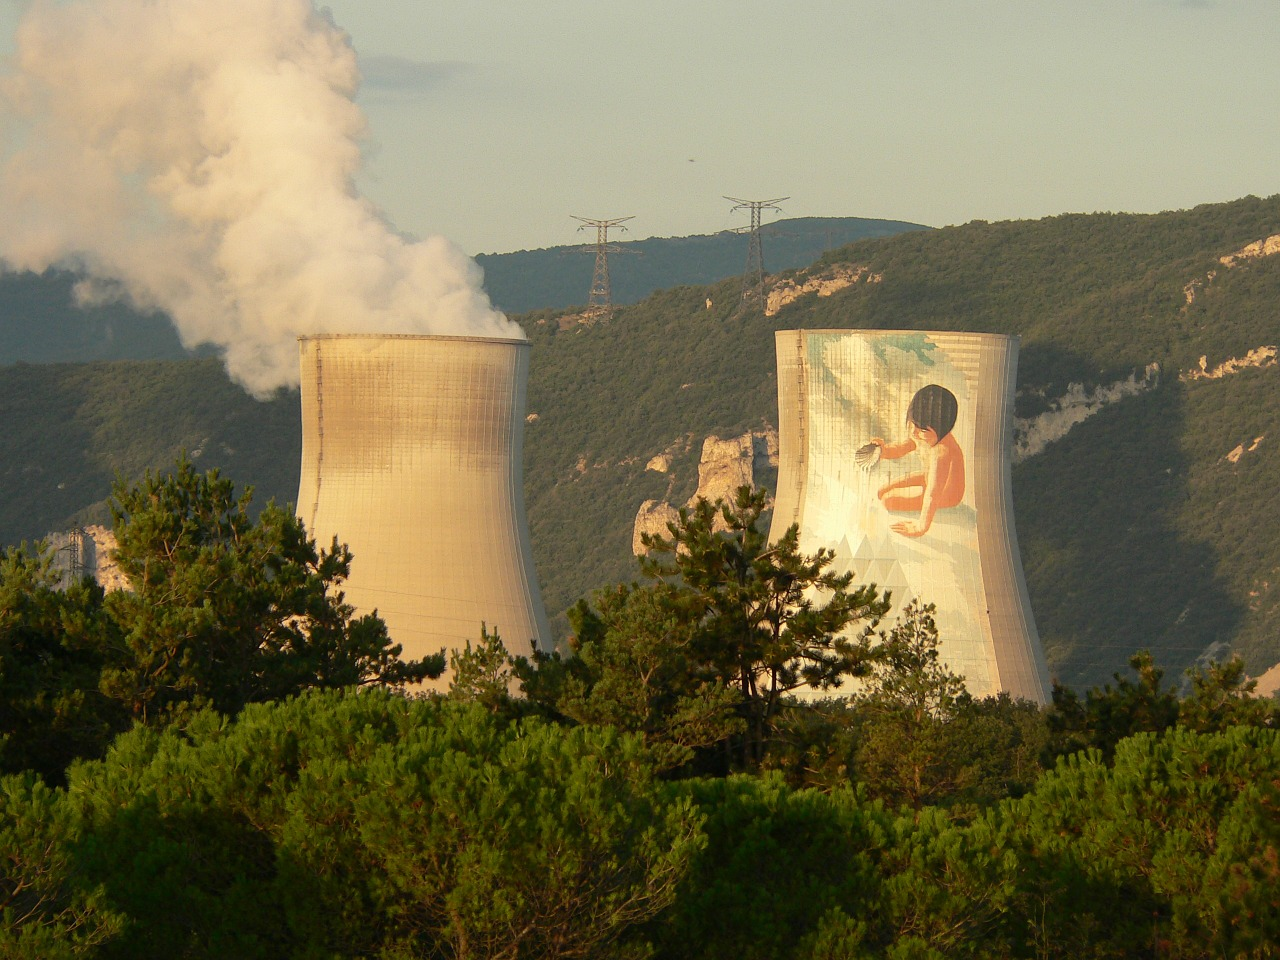 If Climate Change Is a Dire Threat, Why Is No One Talking about Nuclear Power?